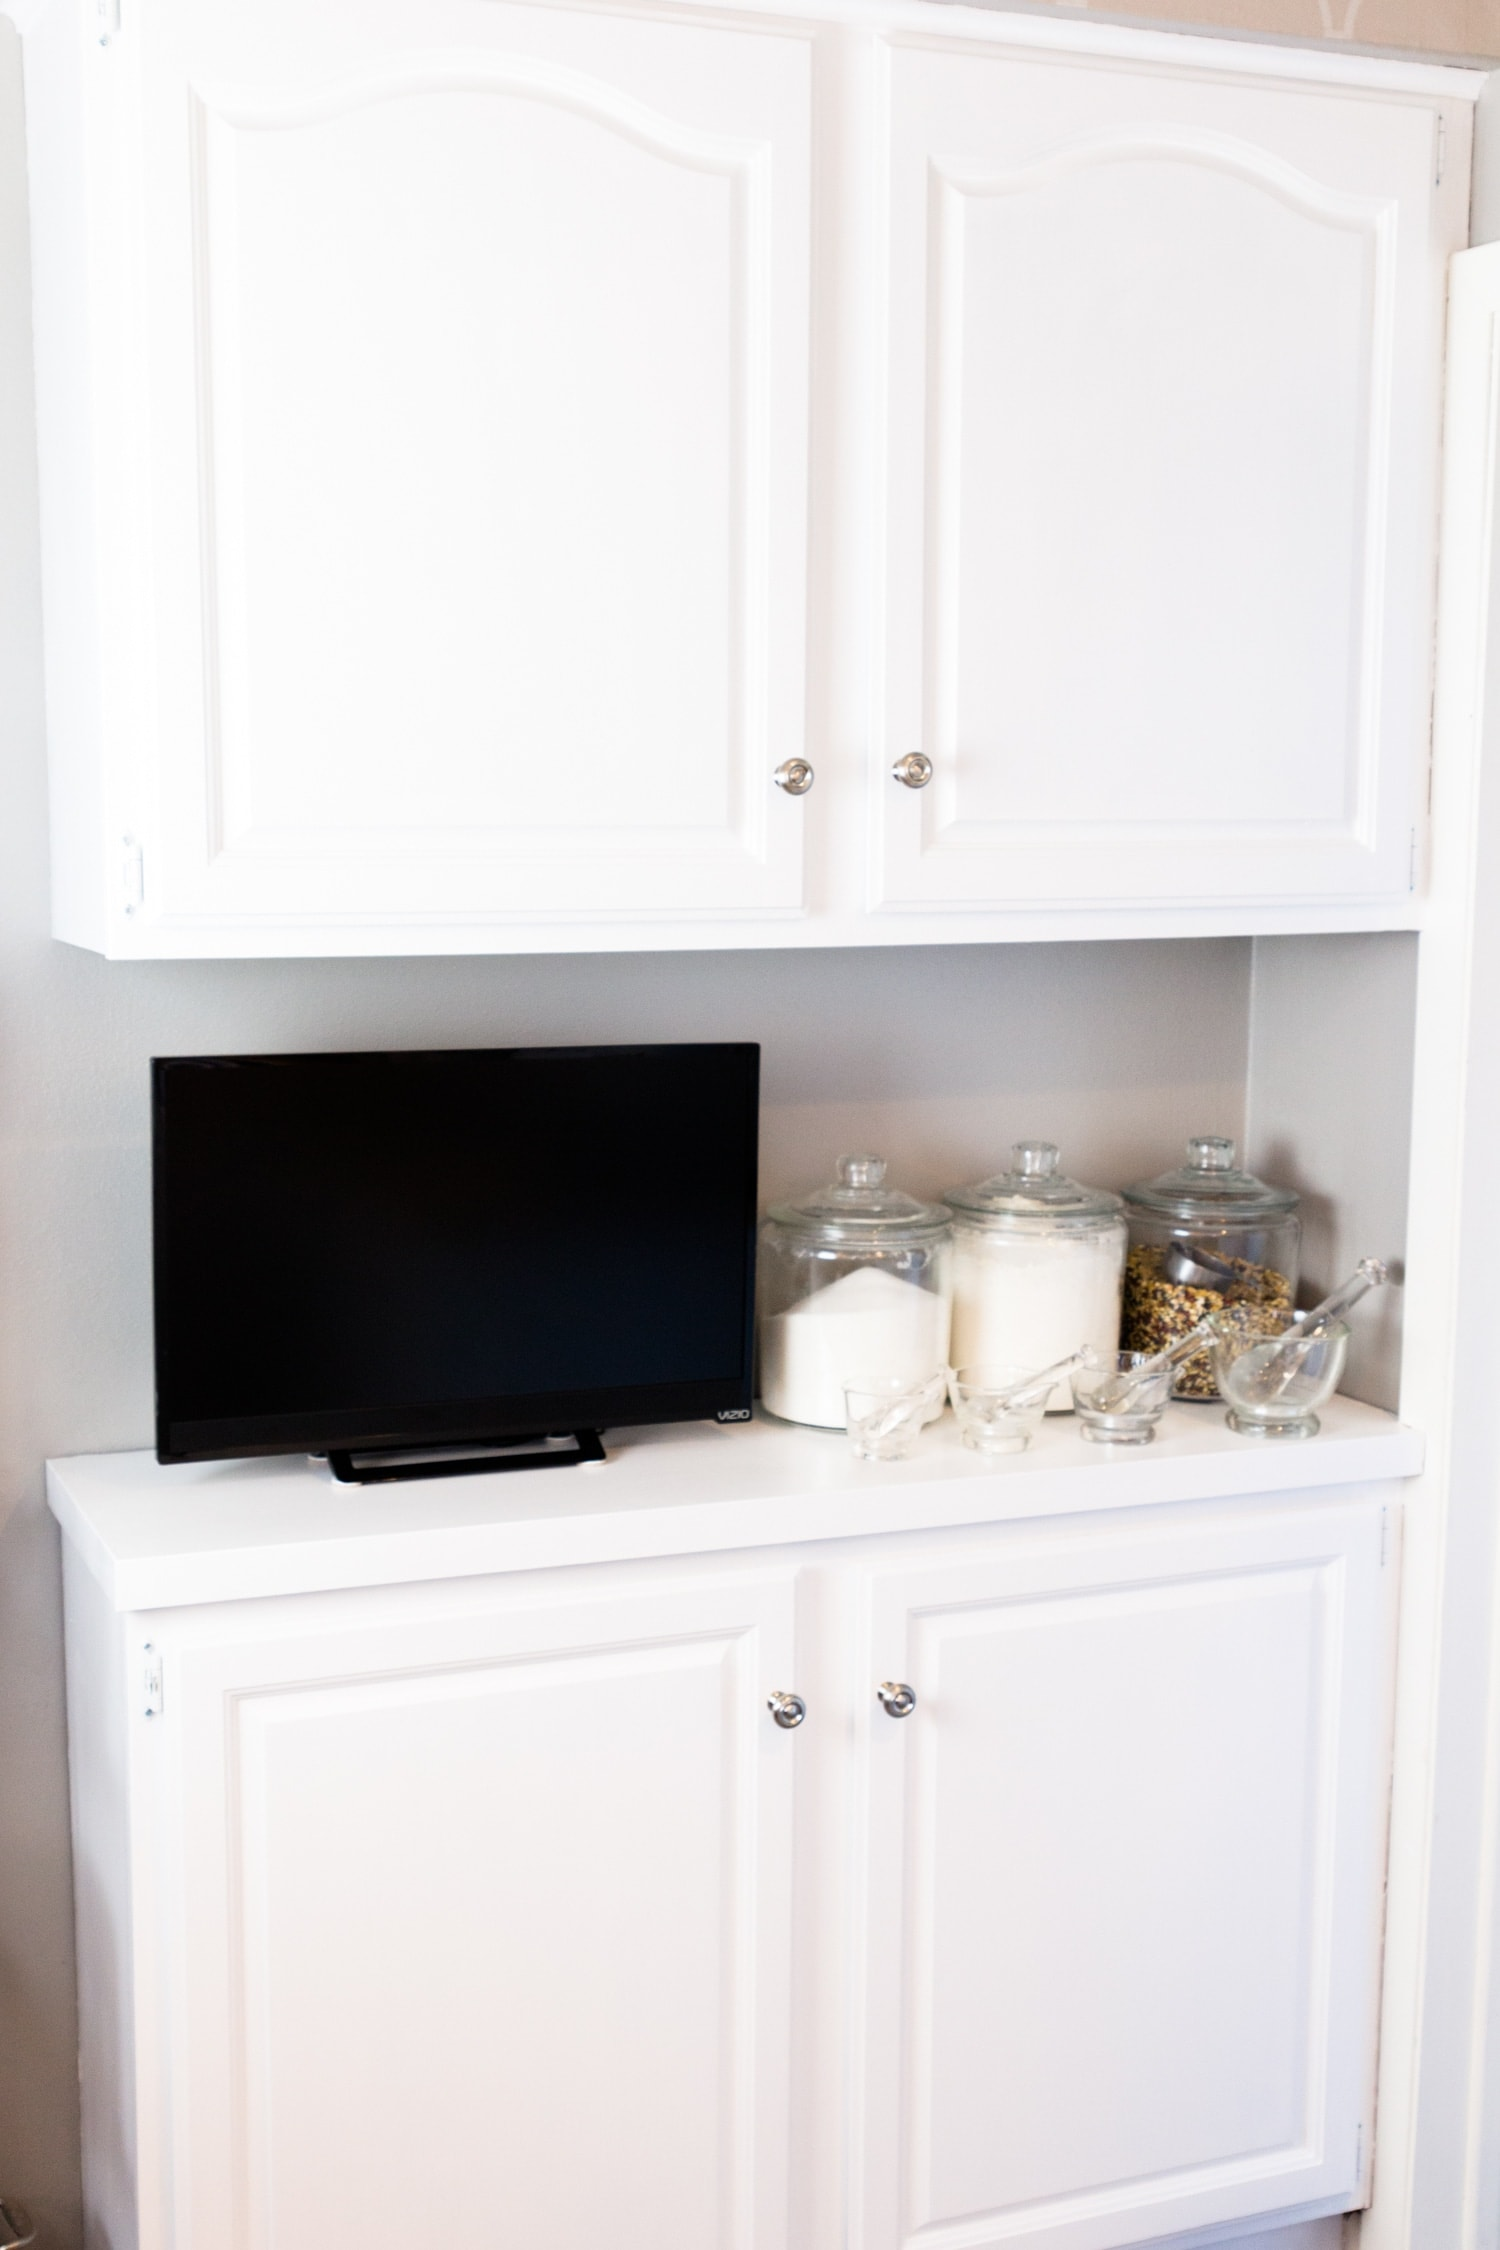 Bright white kitchen cabinets with television and jars full of kitchen supplies sitting on countertop